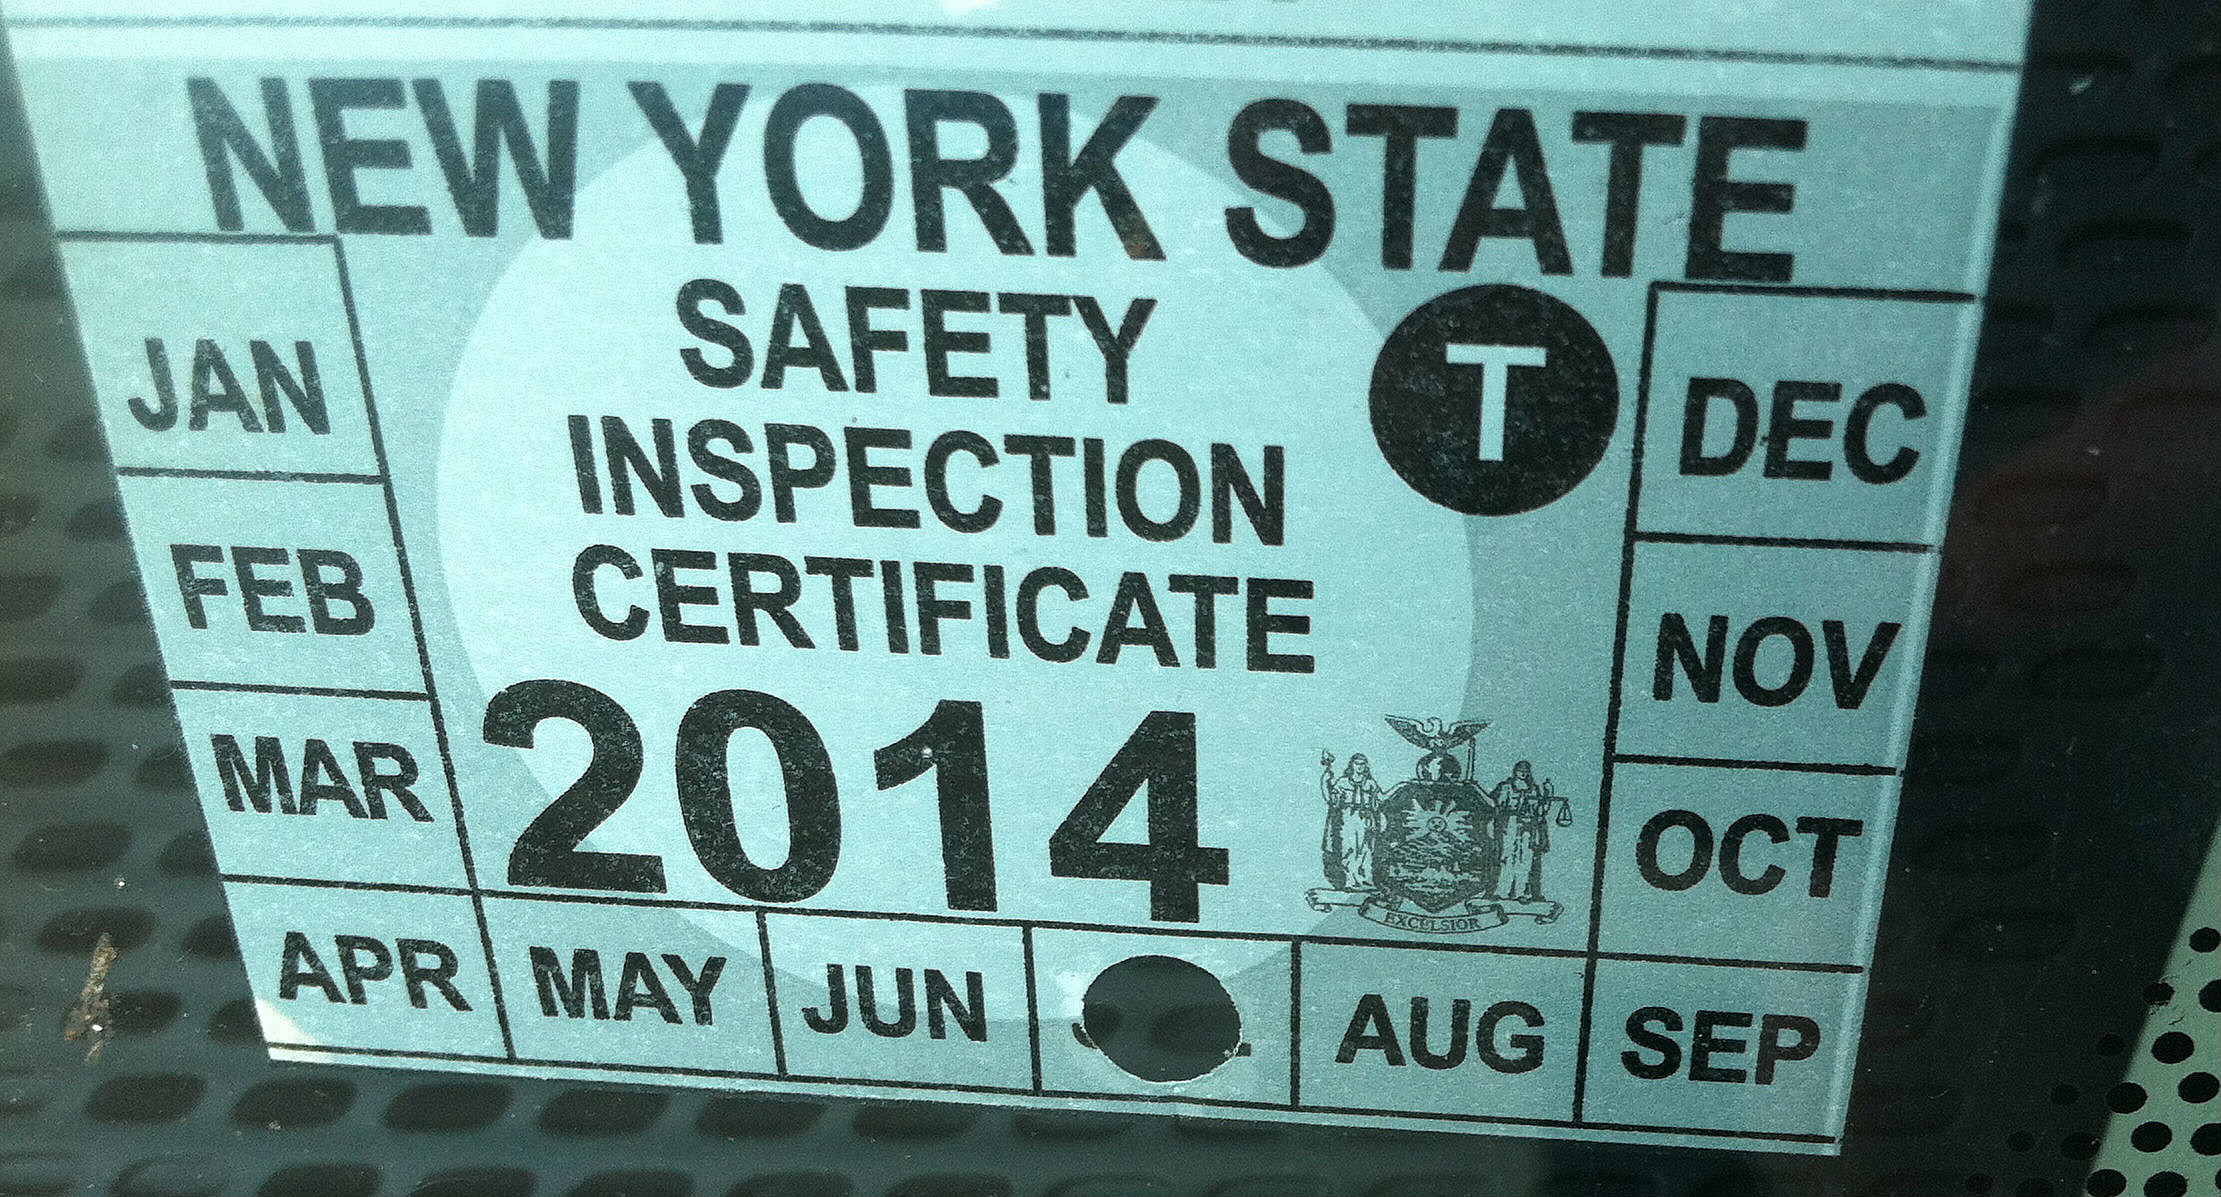 ... of safety equipment and tests new york state requires your vehicle to have a inspection for safety at dmv licensed station every 12 months or when ...